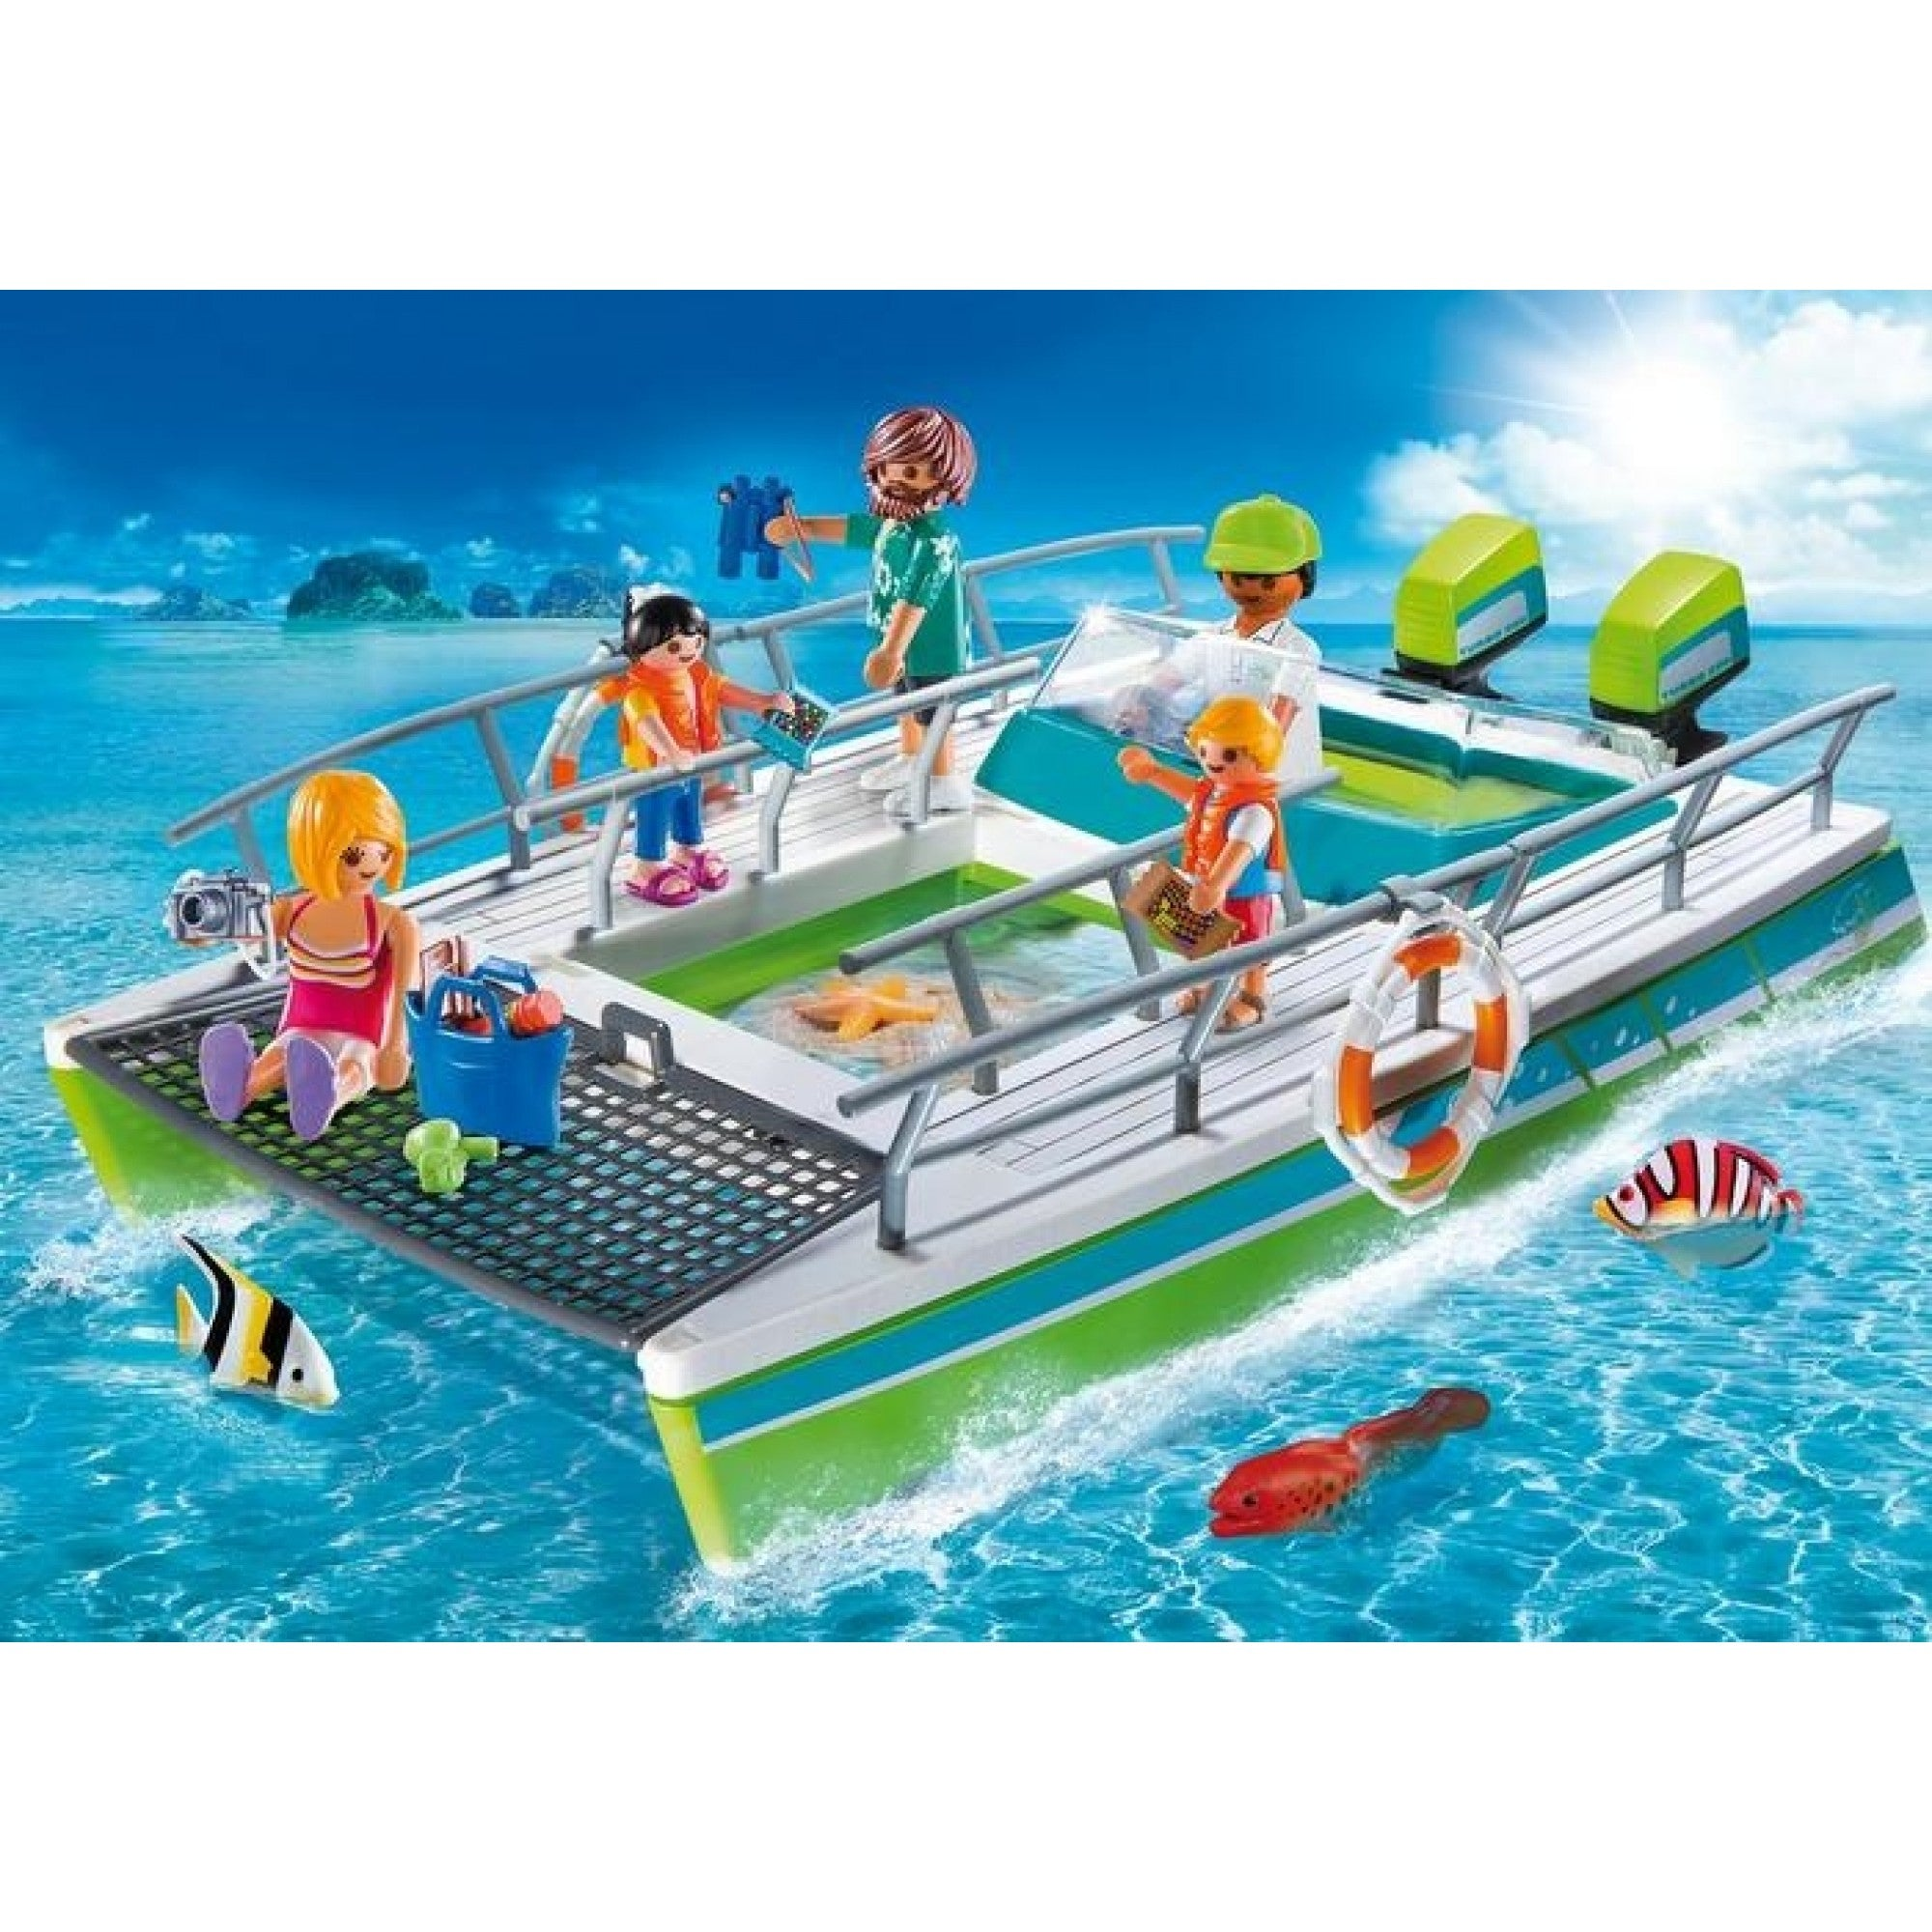 Glass Bottom Boat with Underwater Motor - Playmobil